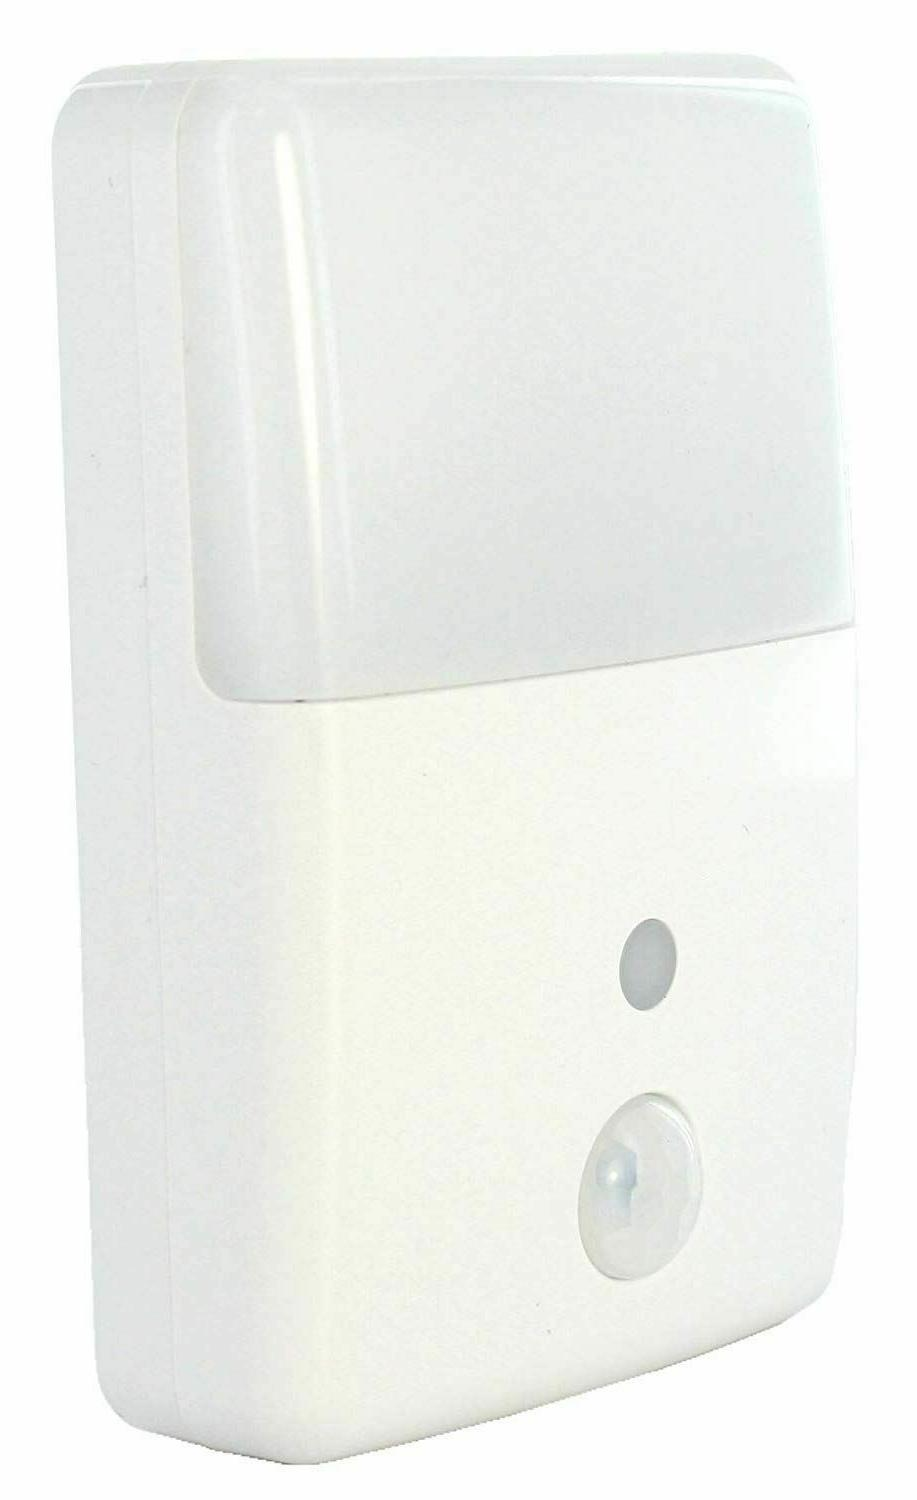 Motion Activated Detector Sensor LED Indoor Night Light Home